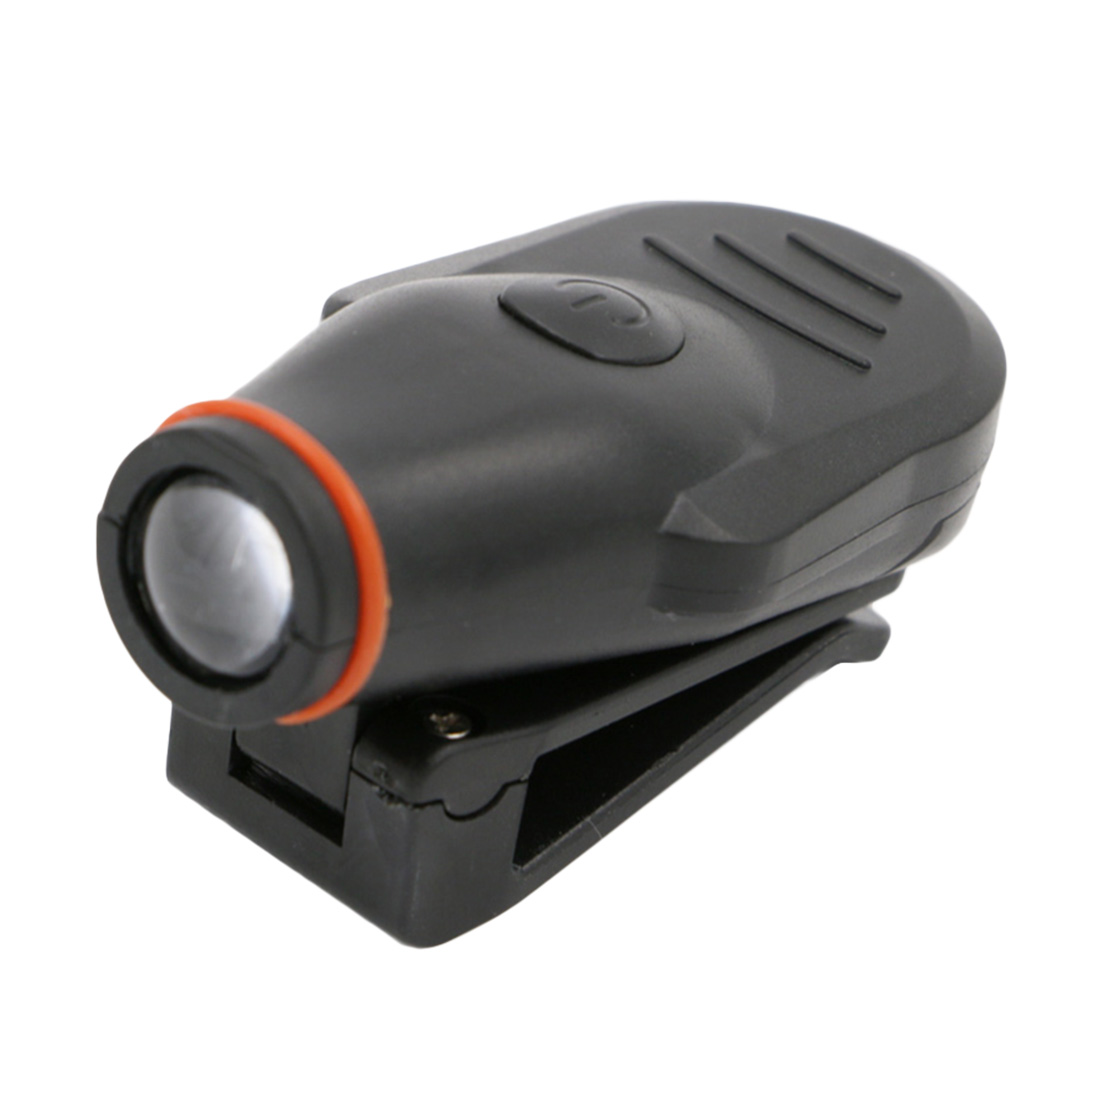 NEW Mini LED Headlight Forehead Flashlight Cap Hat Torch Head Light Outdoor Fishing Camping Hunting Clip-On With Battery